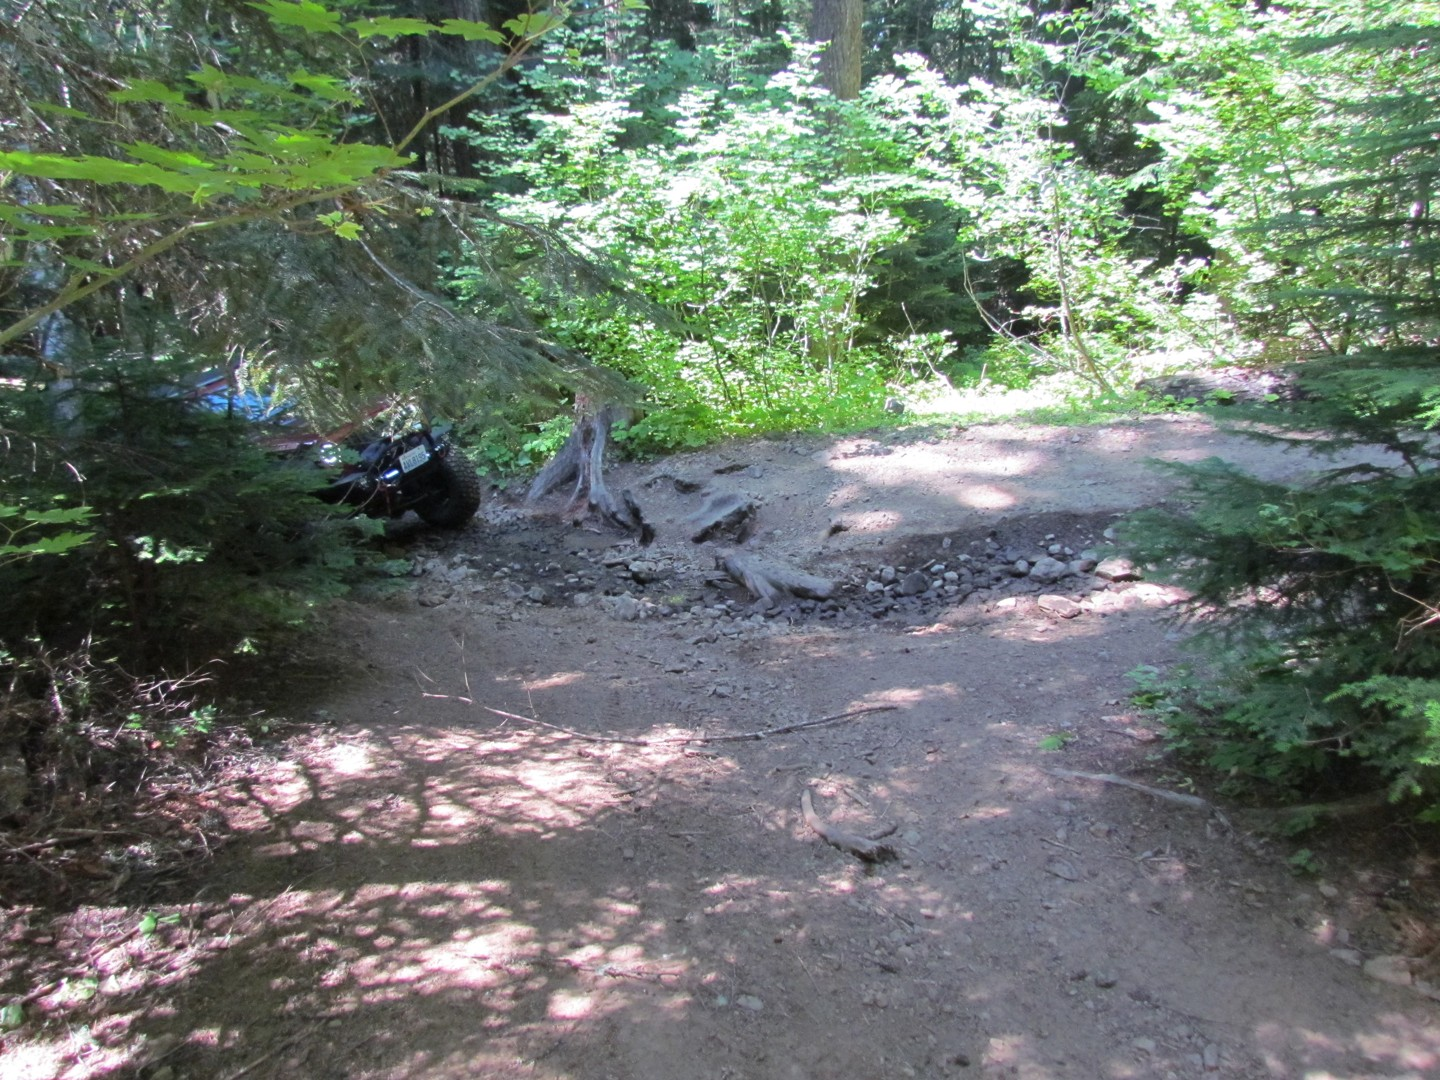 Naches Trail - Waypoint 6: Trail intersection / stay left